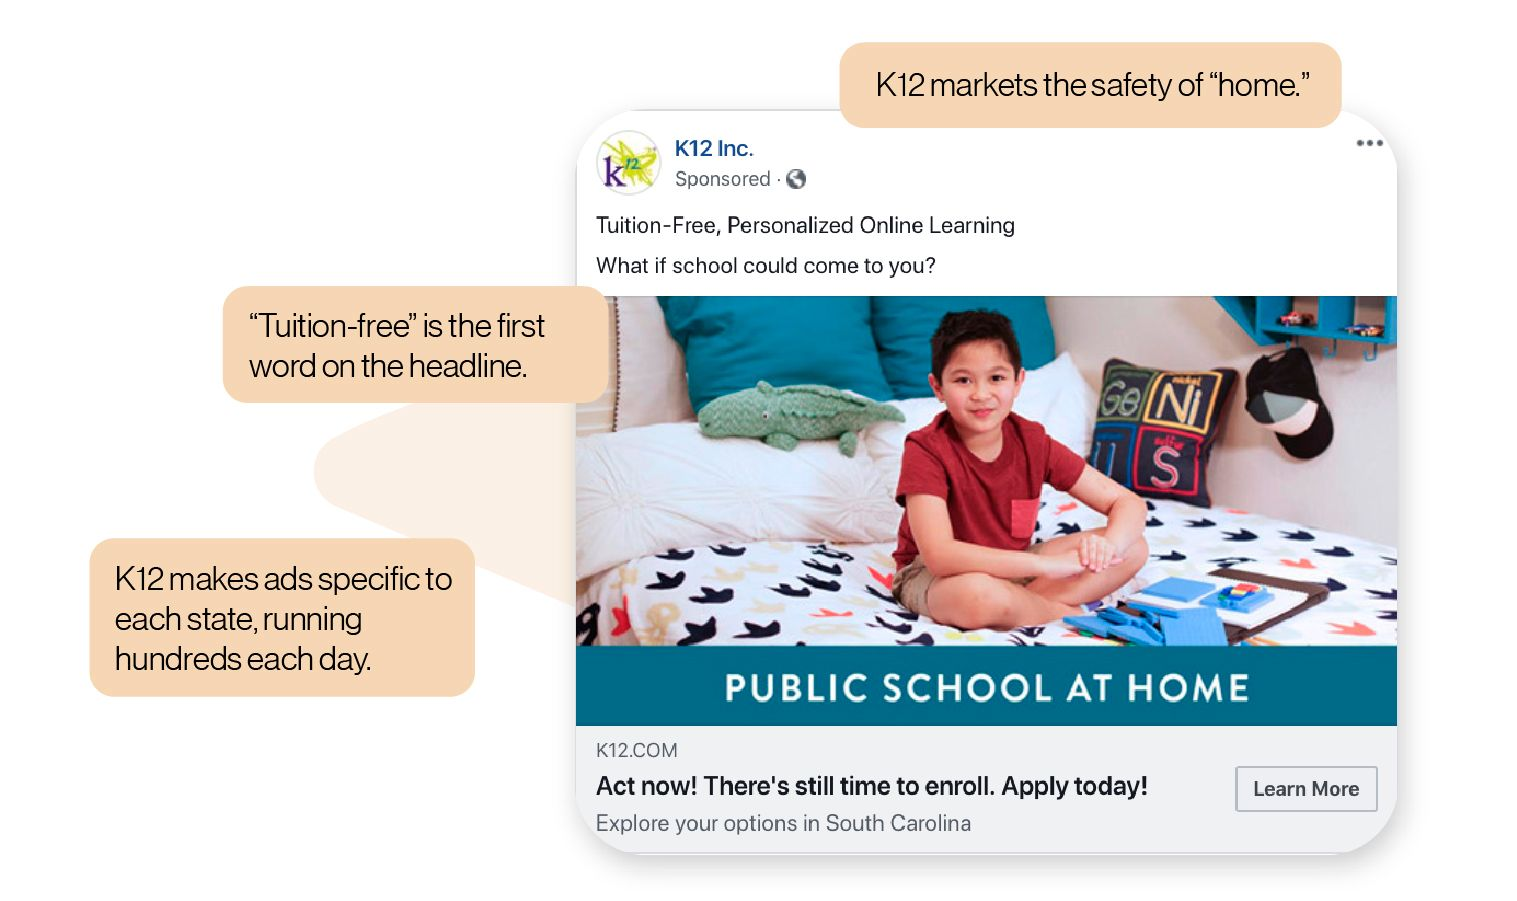 Image: A K12 Inc. Facebook ad showing a child in his own room - reemphasizes safety and free tuition